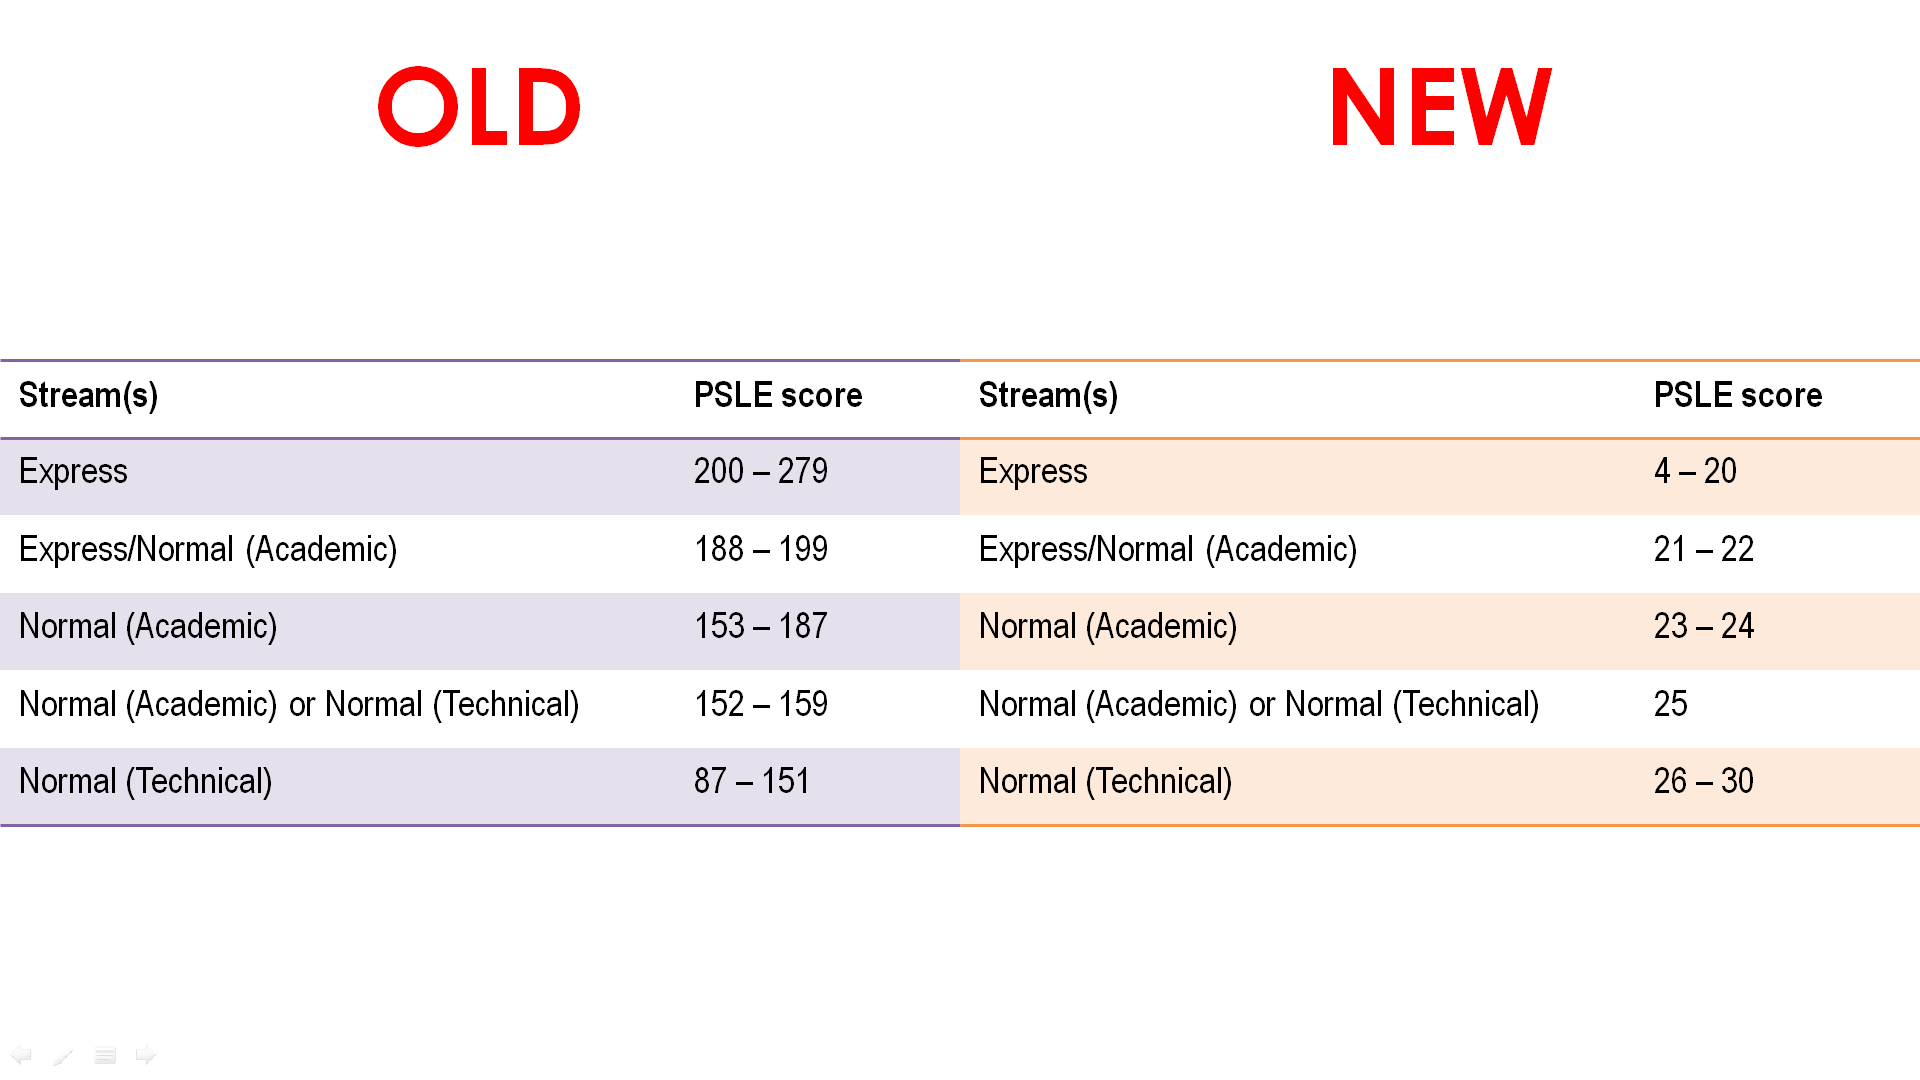 Old vs New PSLE Streaming Cut-Off Points